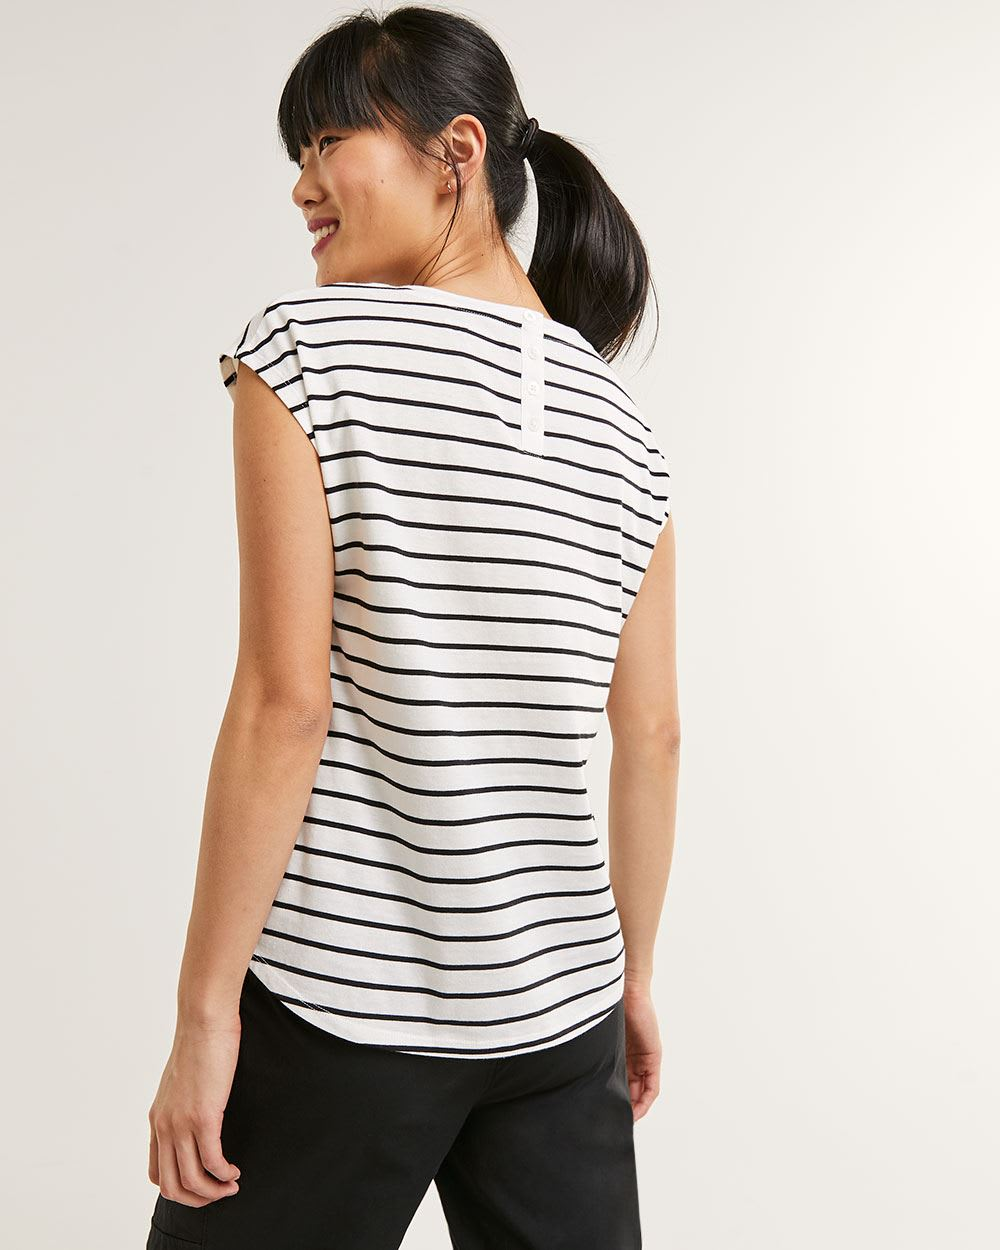 Drop Shoulder Sleeve Scoop Neck Tee